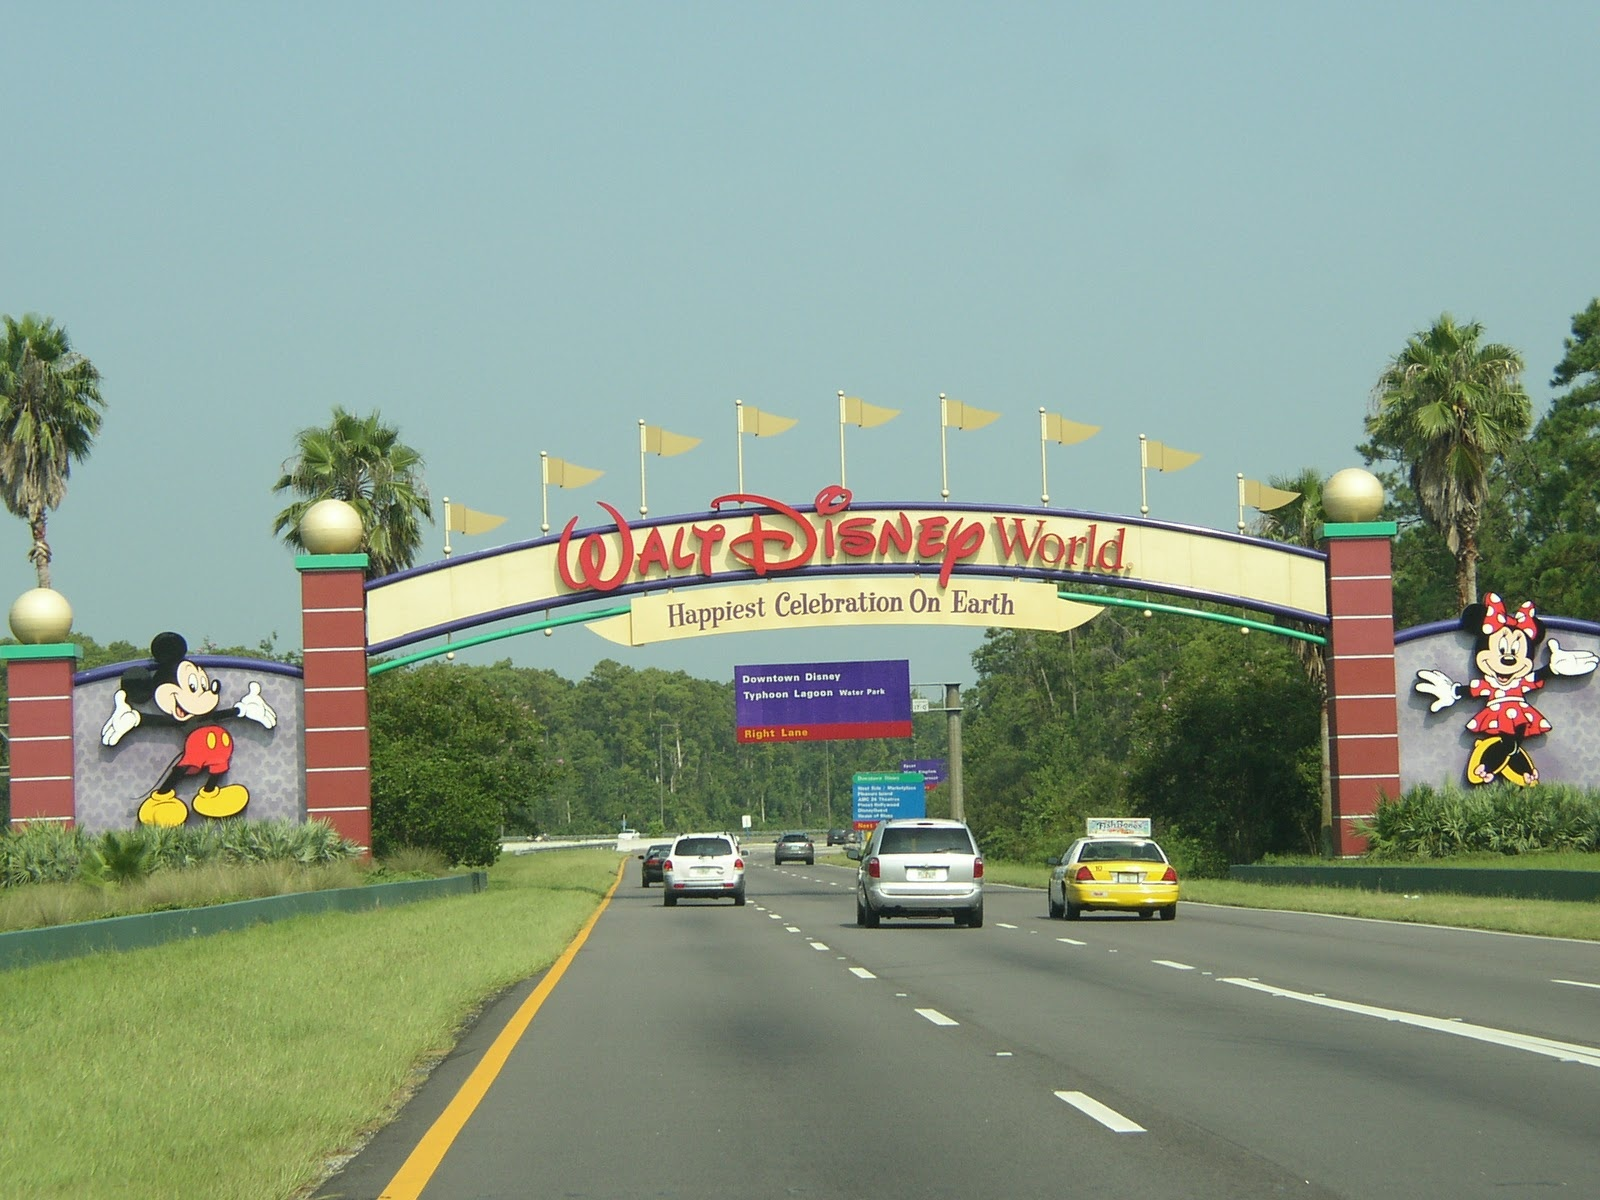 You will drive past this sign on the way into Walt Disney World. Please do not pull over to take a picture of it. This is frowned upon.